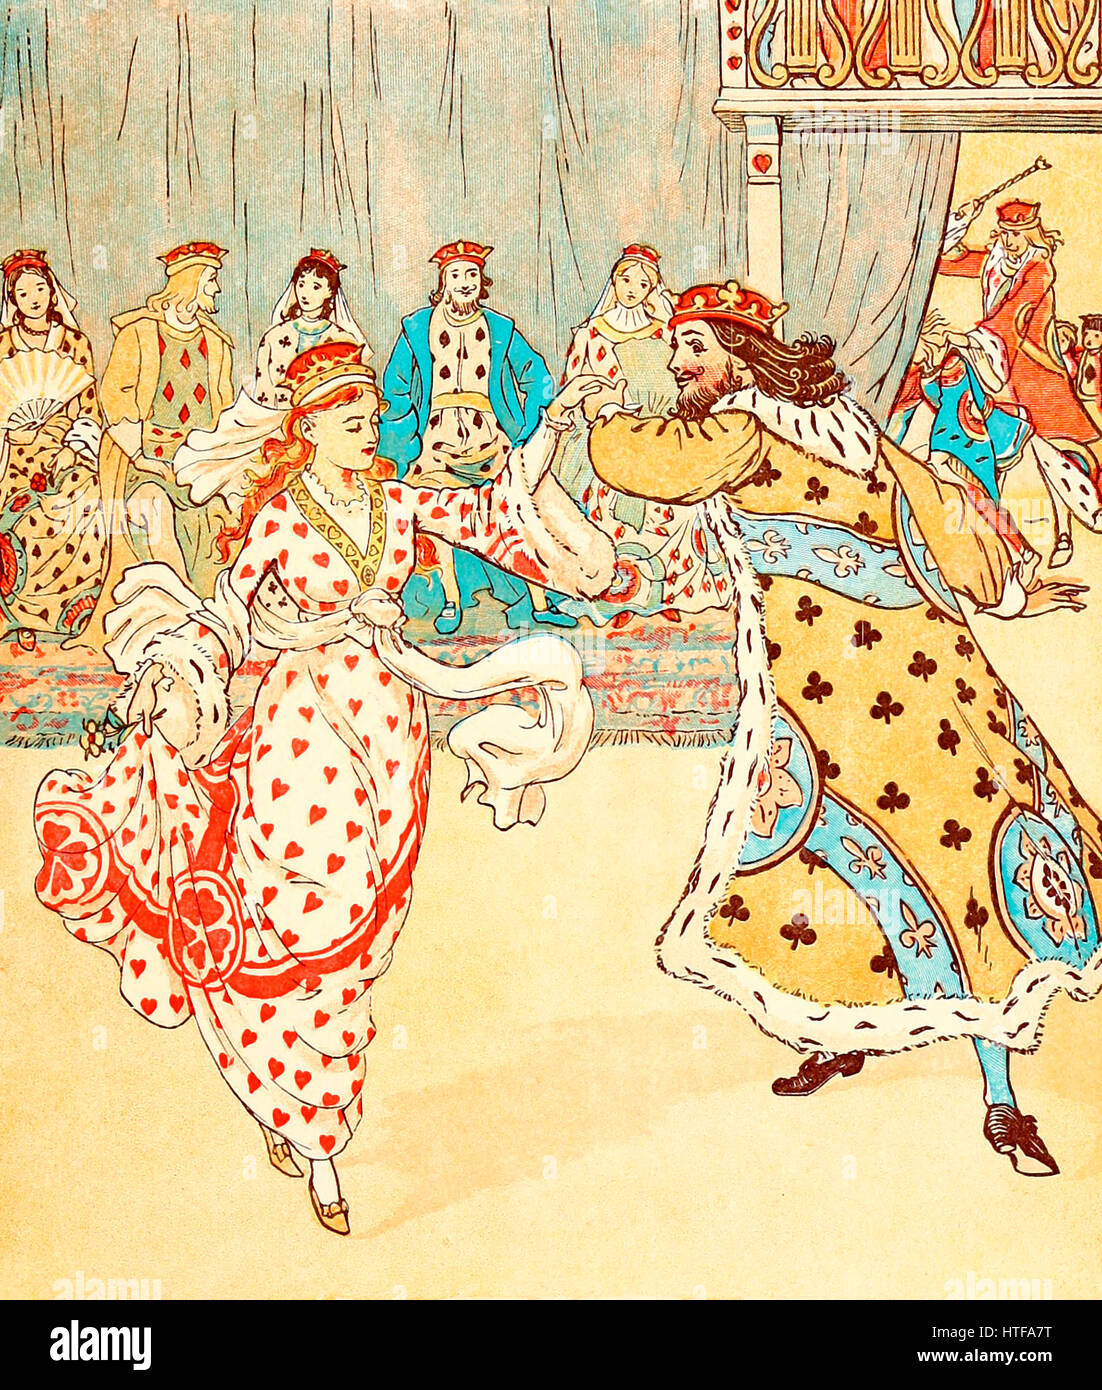 And Beat the Knave Full Sore - The King beats the Knave of Hearts in the Queen of Hearts - Stock Image